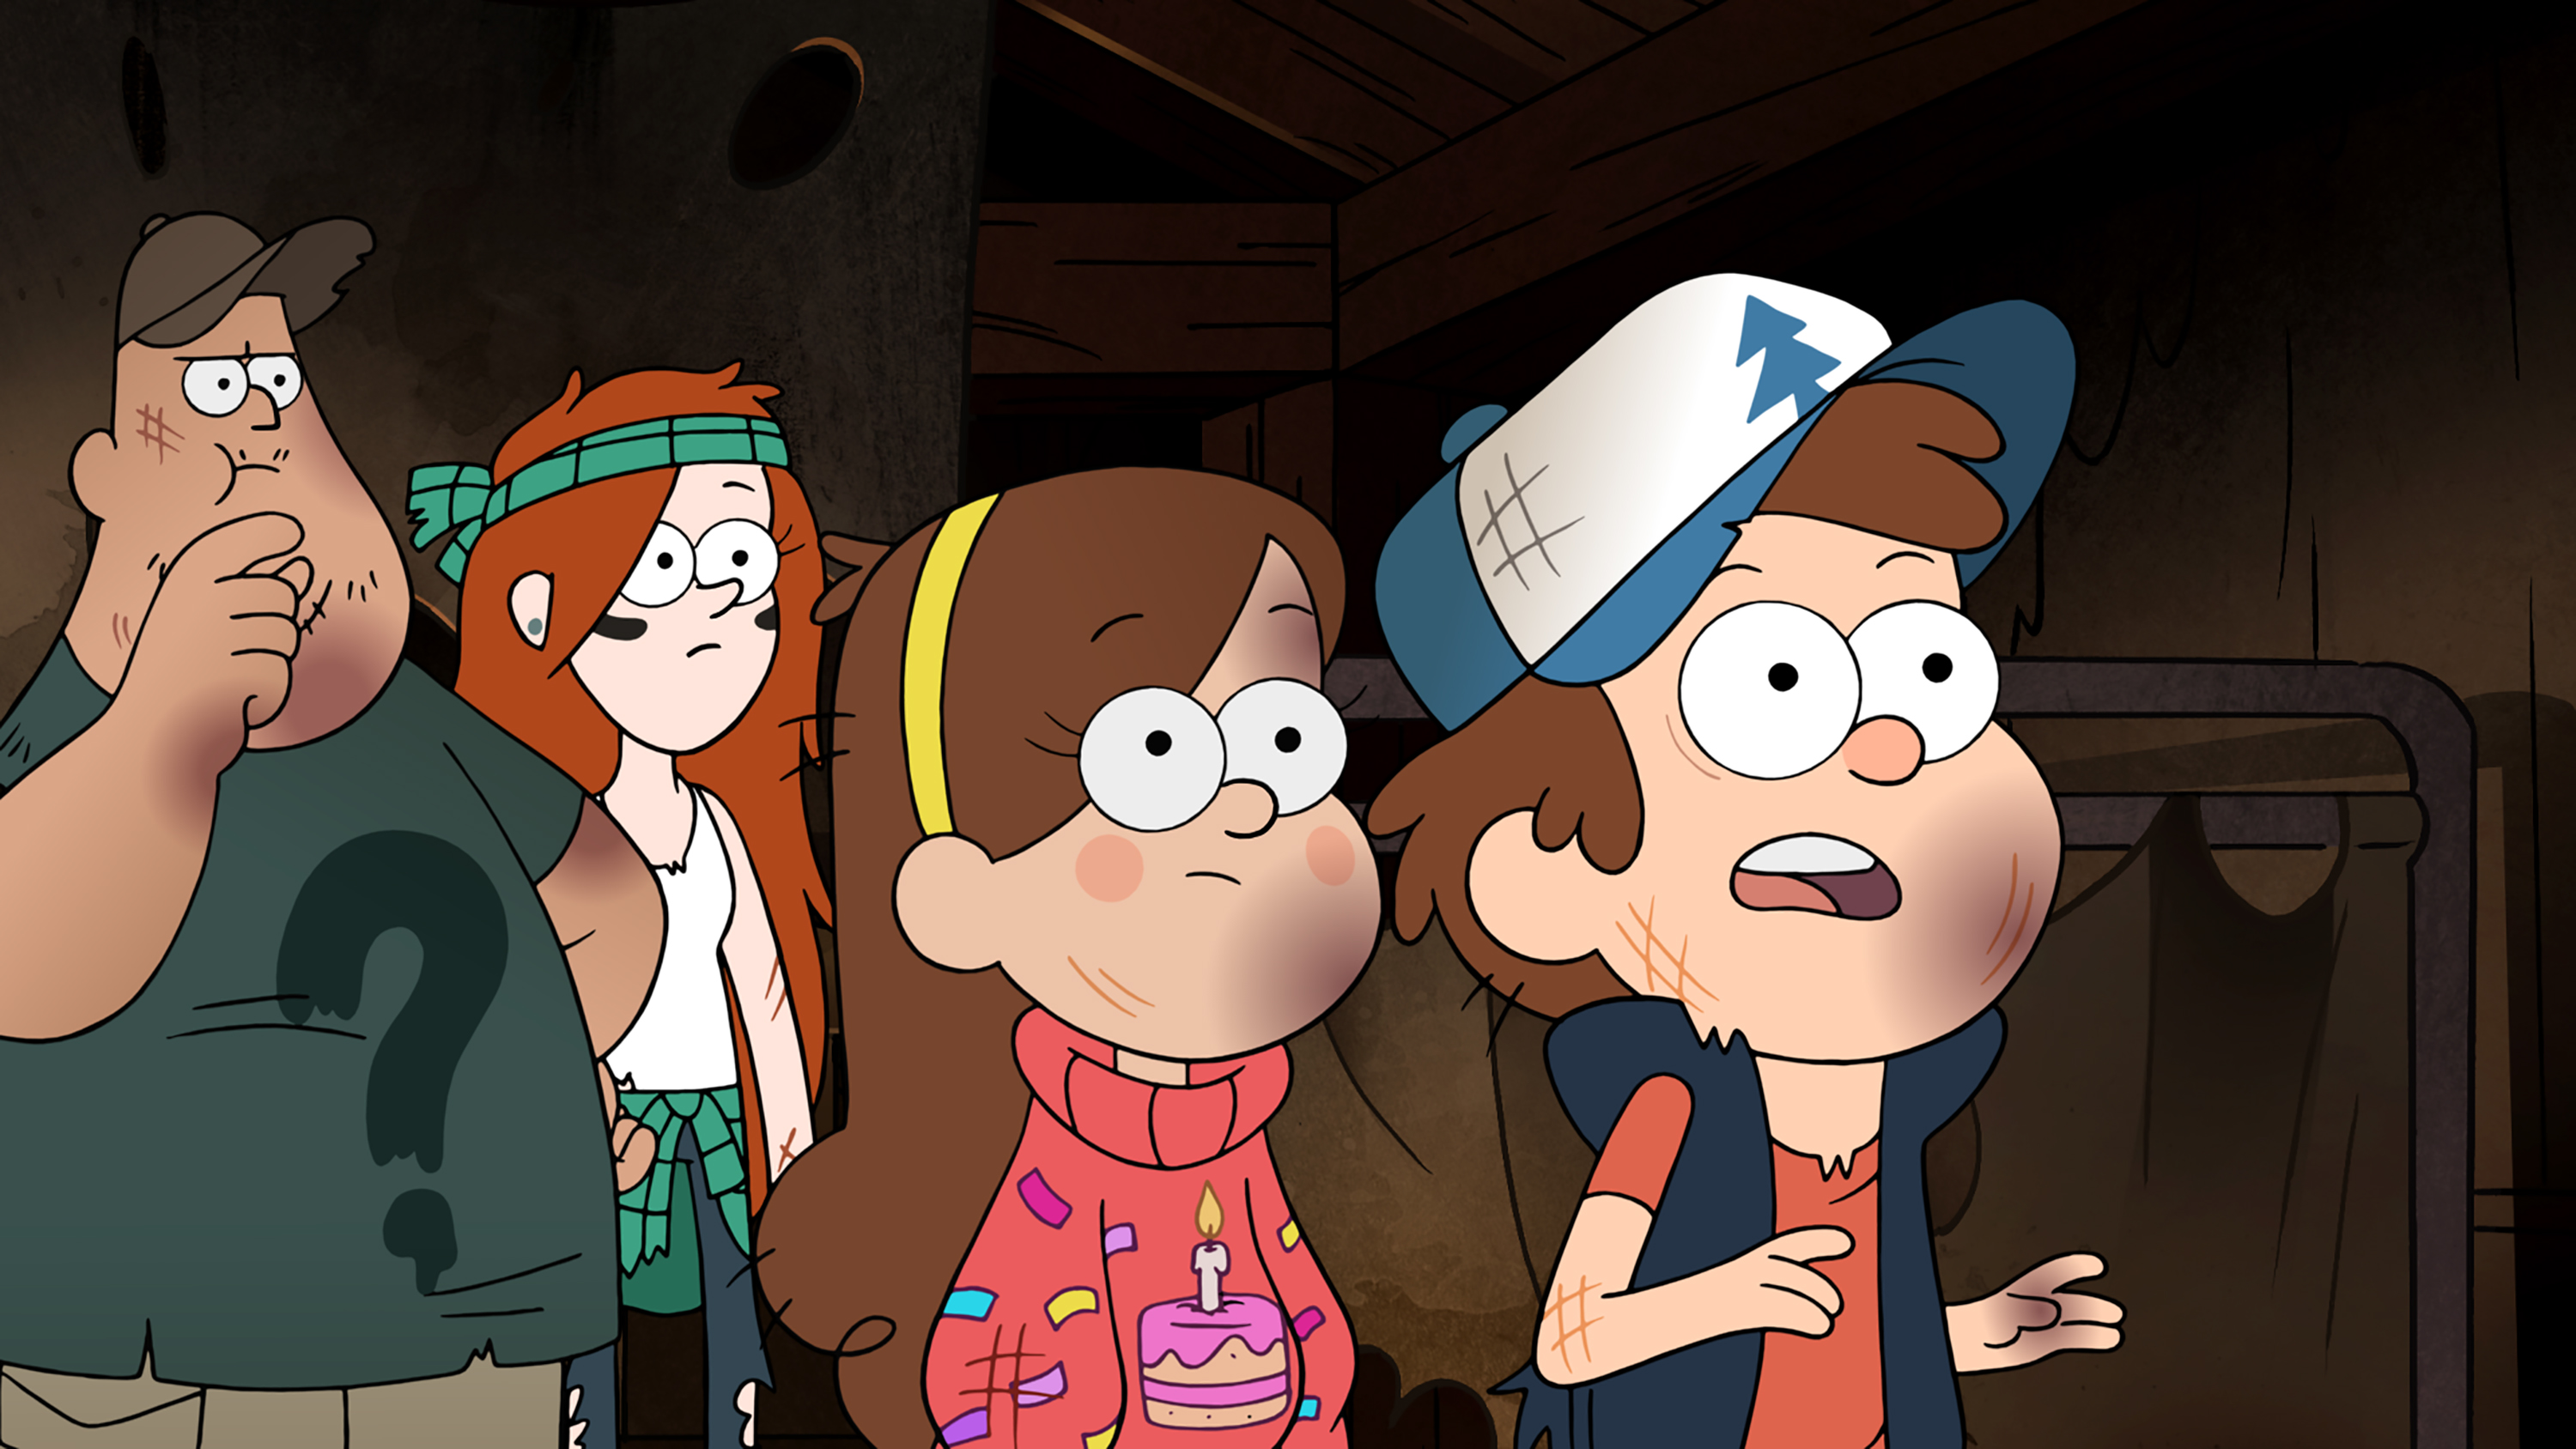 7 Things To Know About The Gravity Falls Series Finale